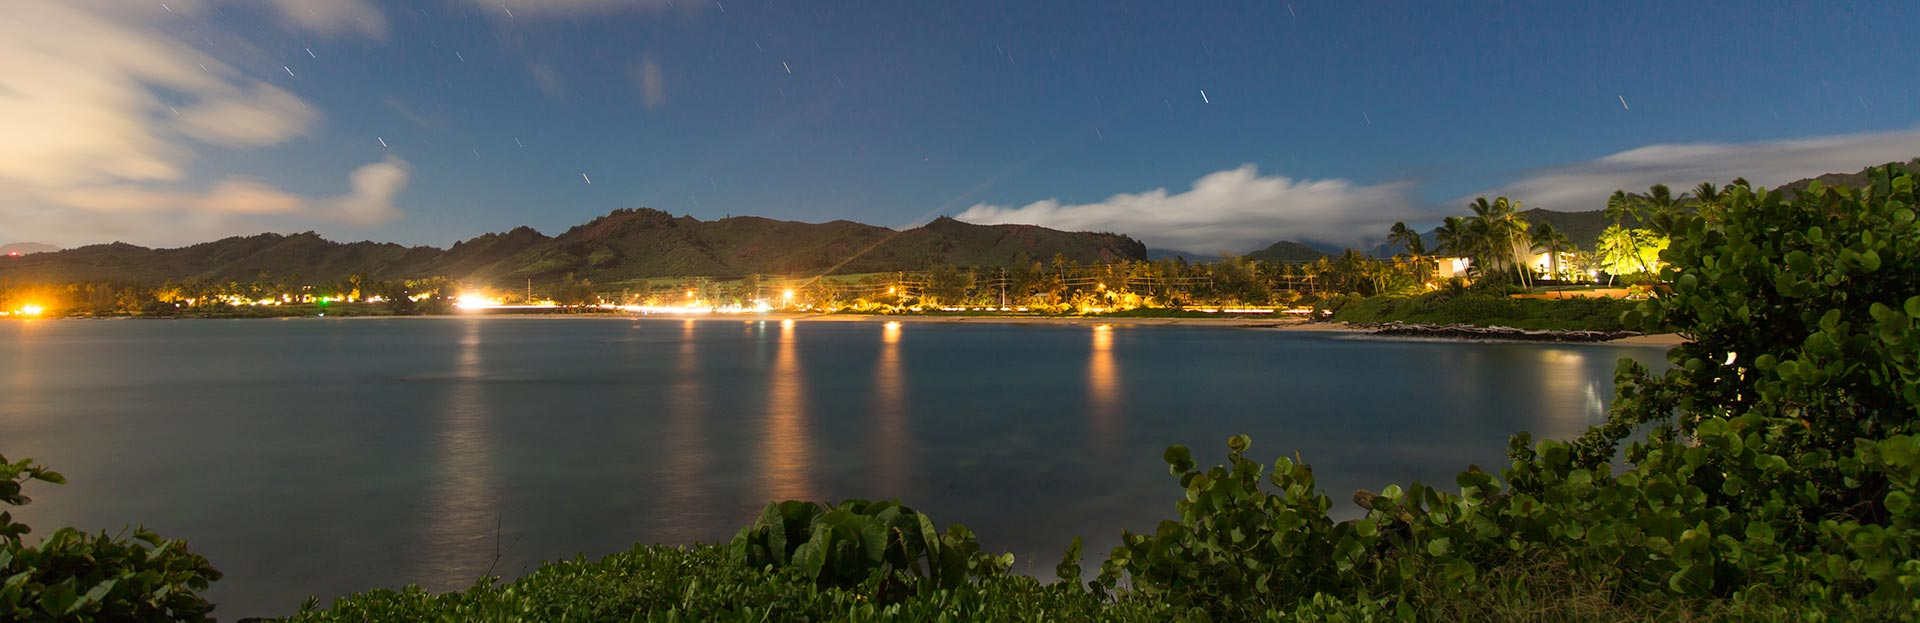 Kauai Night